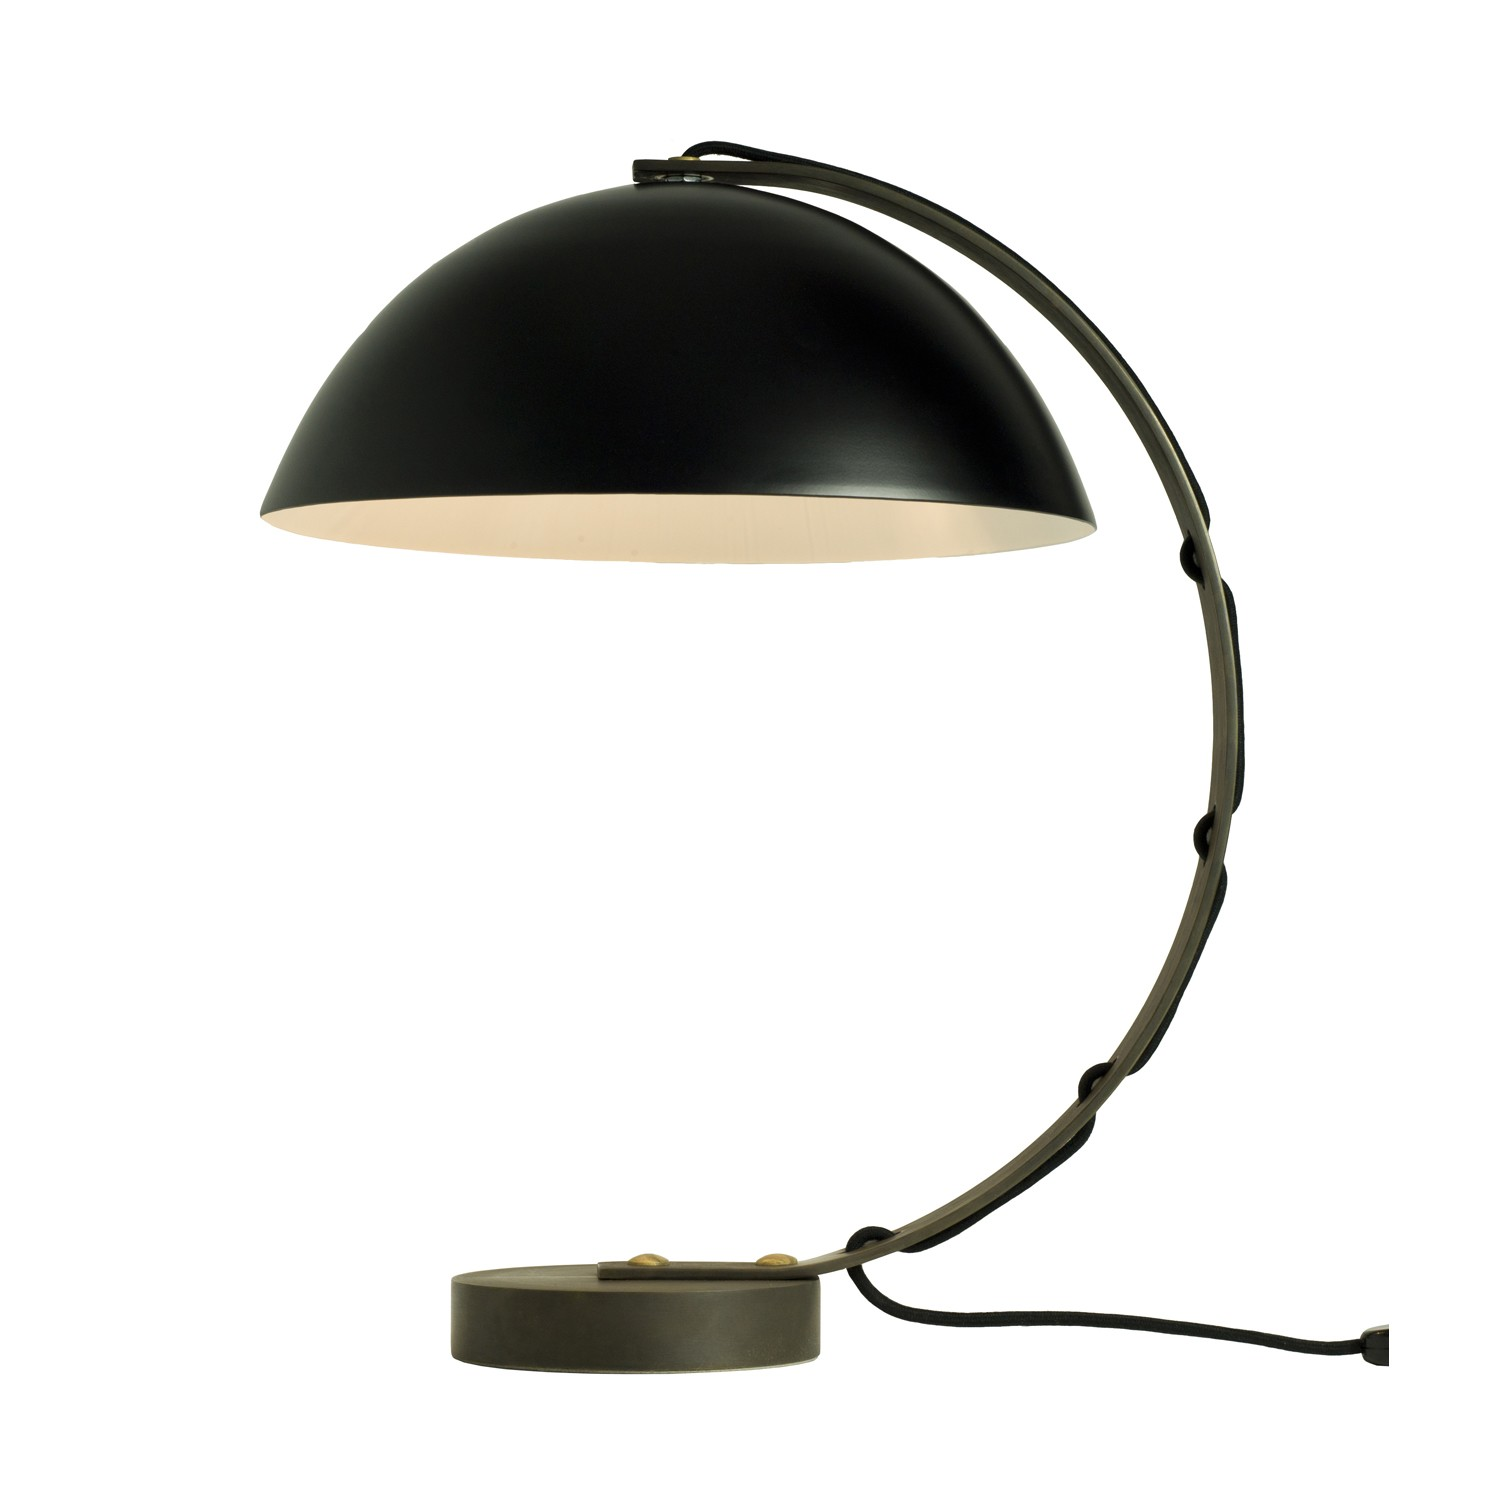 London Table Lamp Black with Brass Base